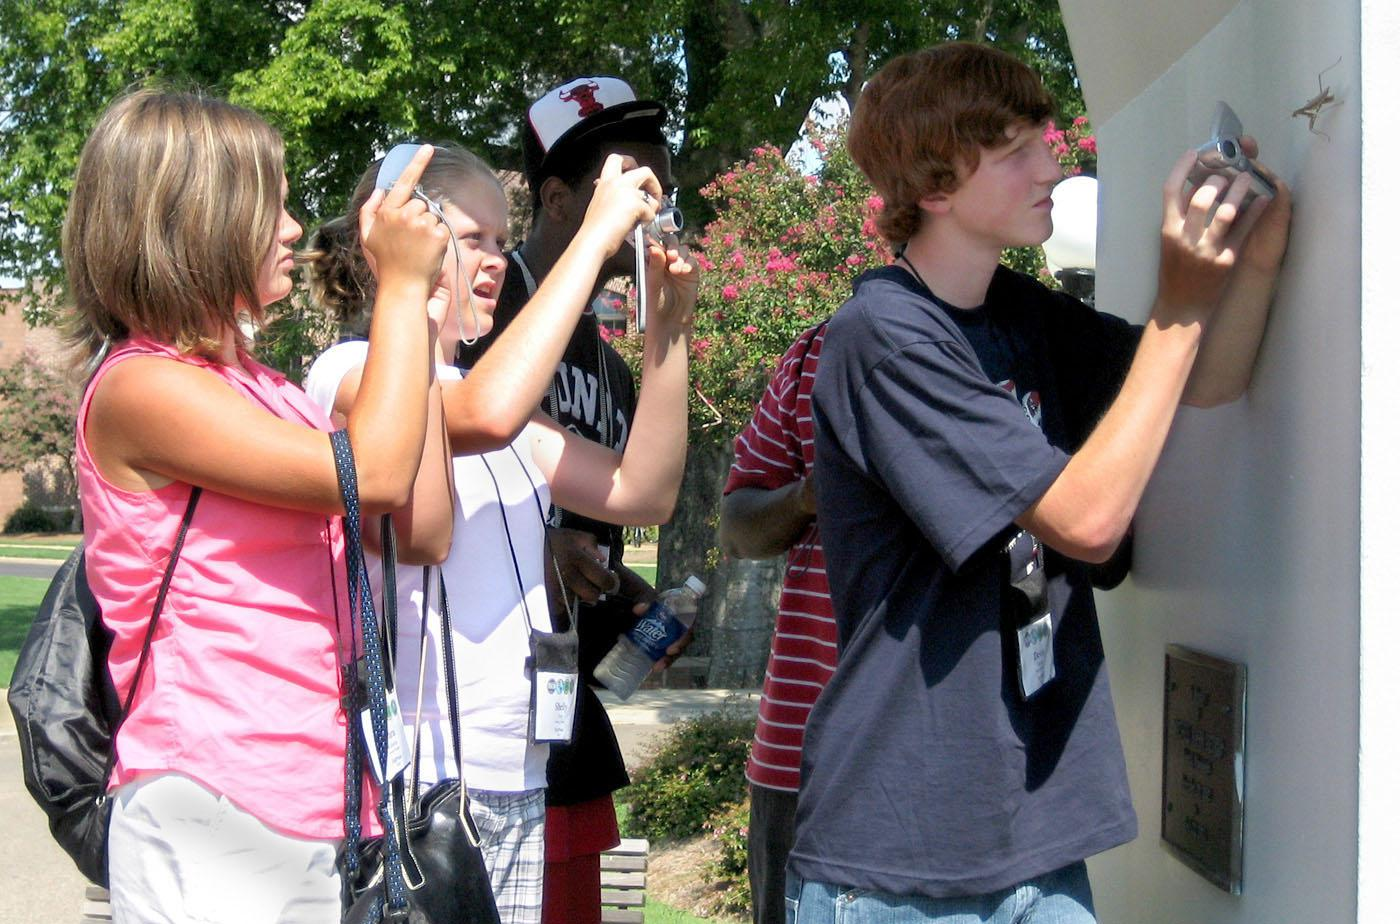 4-H Technology Conference participants, from left, Tara Roberts and Shelly Guy, both of George County, and Devin Doole of Marshall County focus their cameras on a praying mantis during a photo safari. They were taking part in the digital photography track during the three-day camp held at Mississippi State University. (Photo by Jim Lytle/Mississippi State University Ag Communications)